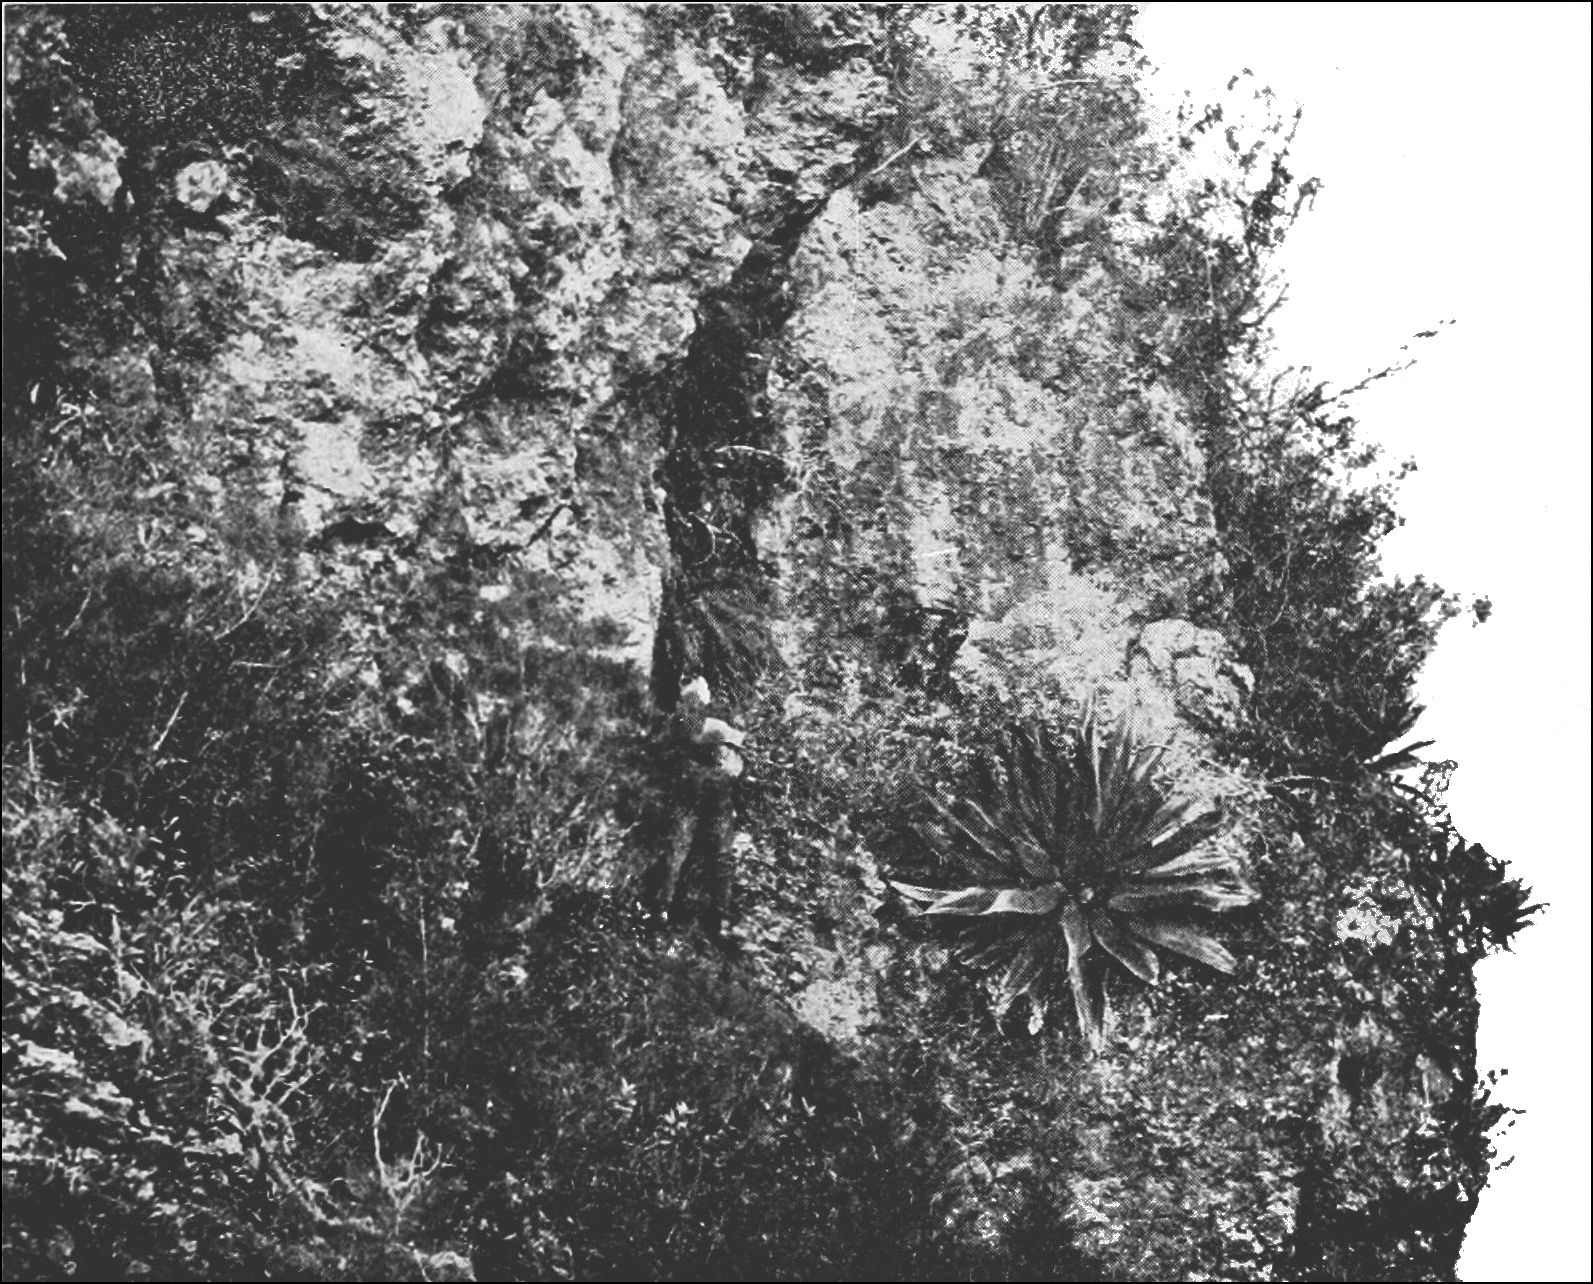 PSM V86 D037 Cliff with xerophytic plants.jpg